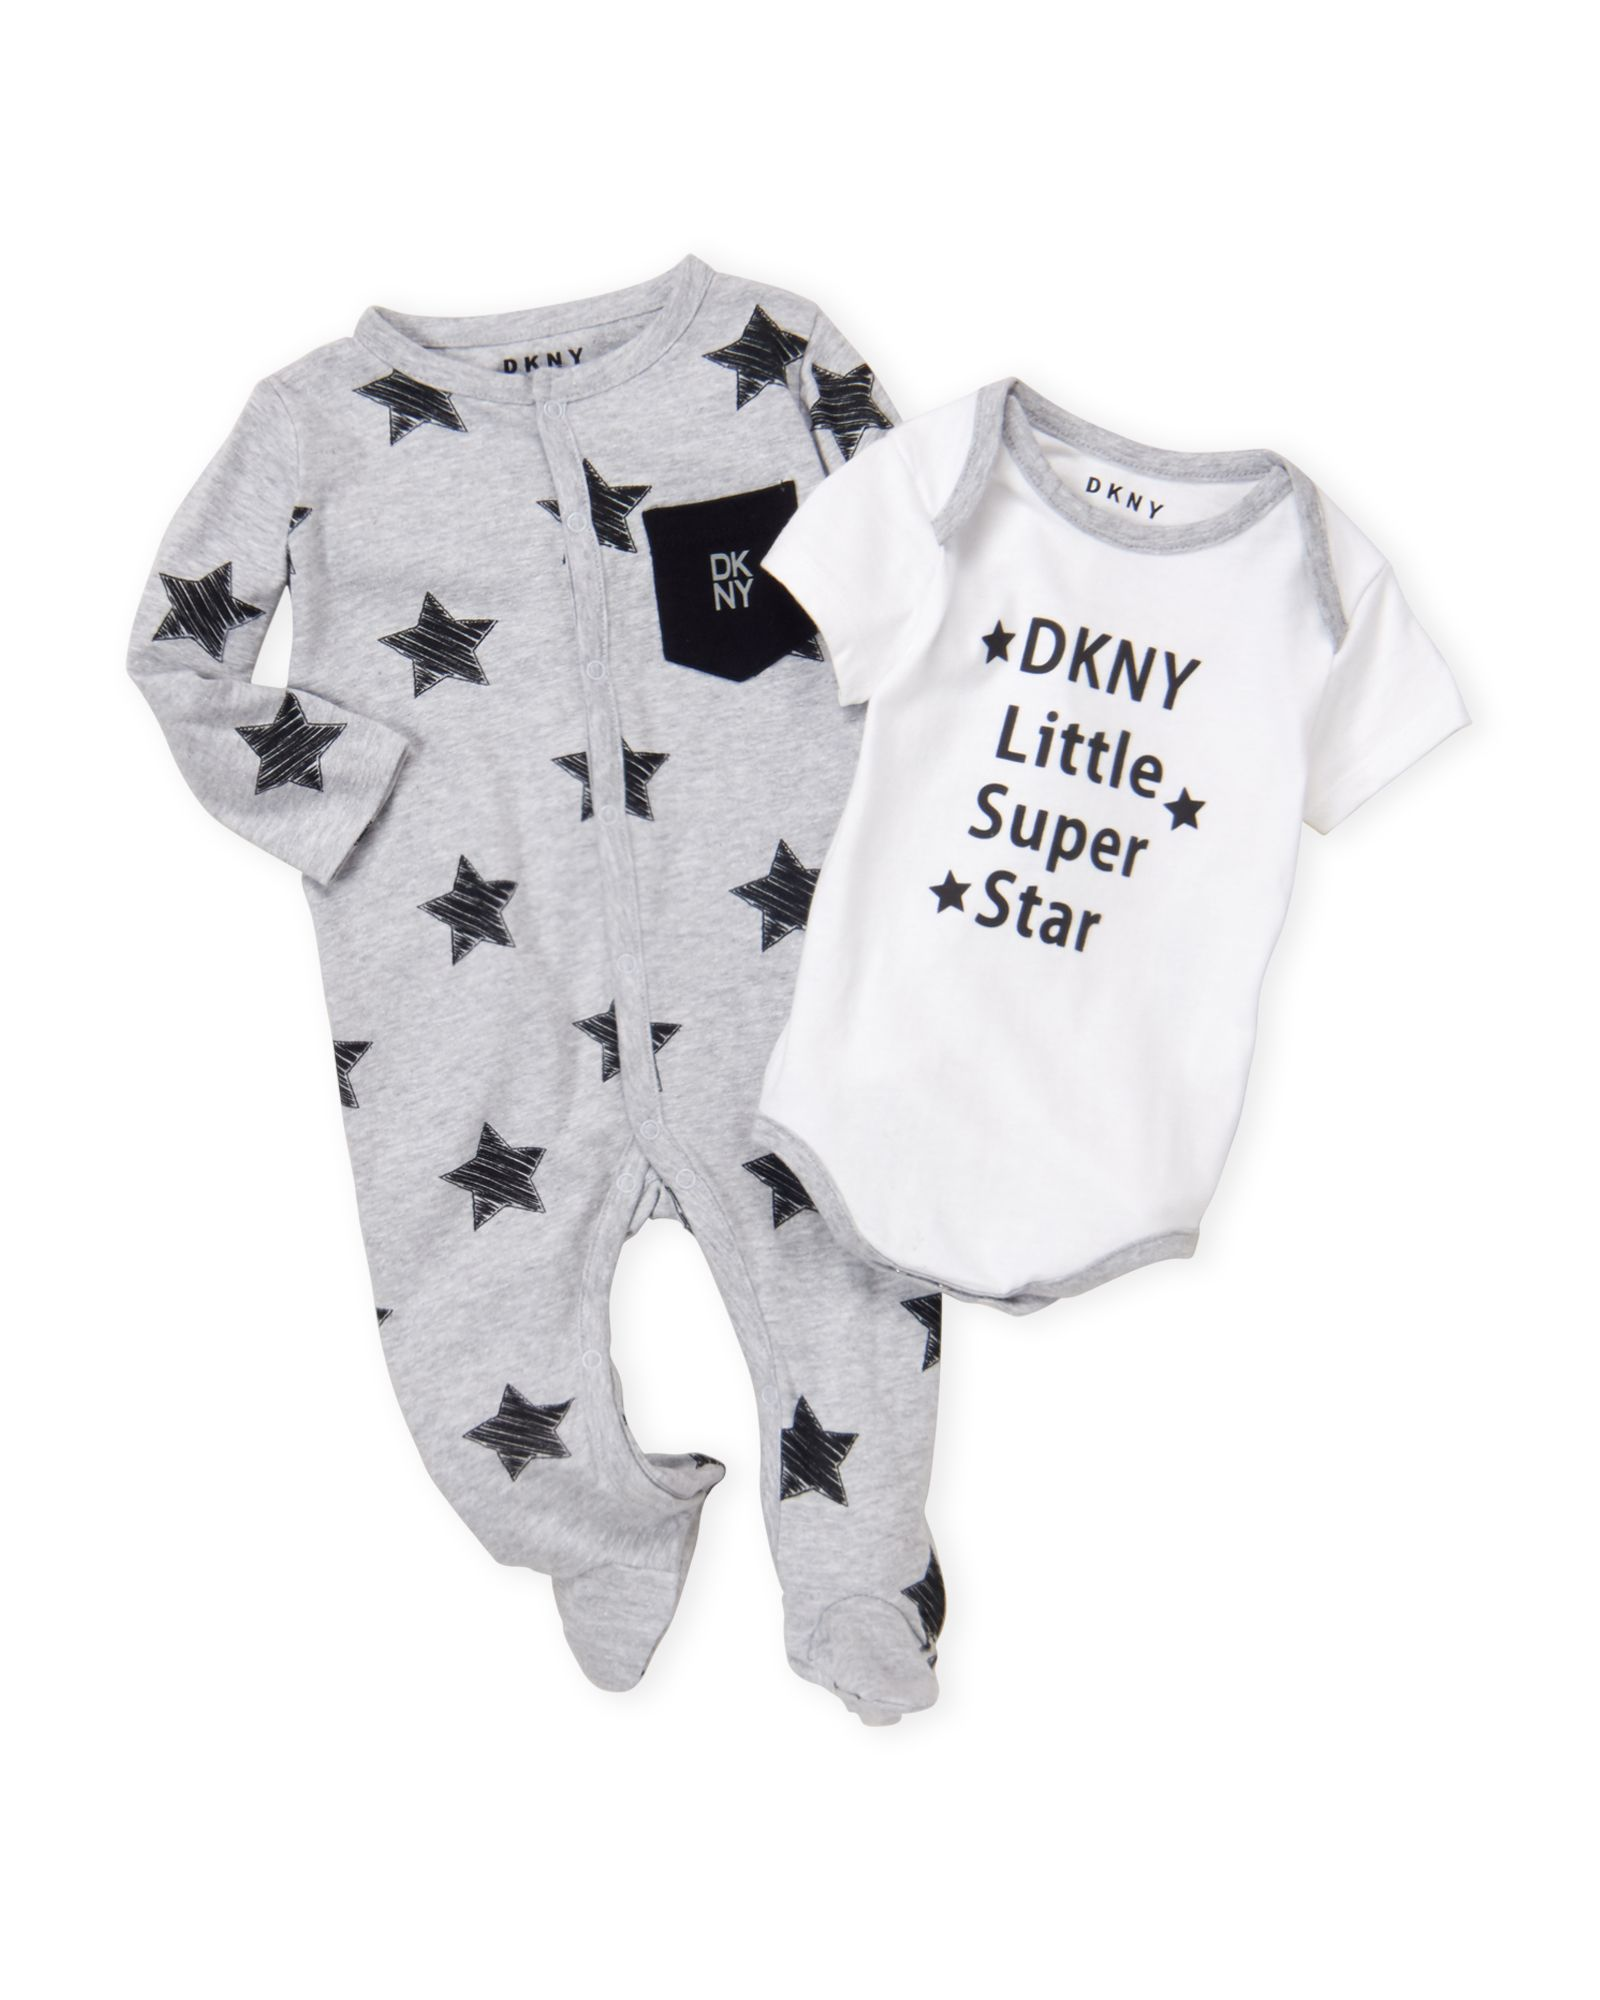 Newborn TwoPiece Super Star Coveralls u Bodysuit Set in